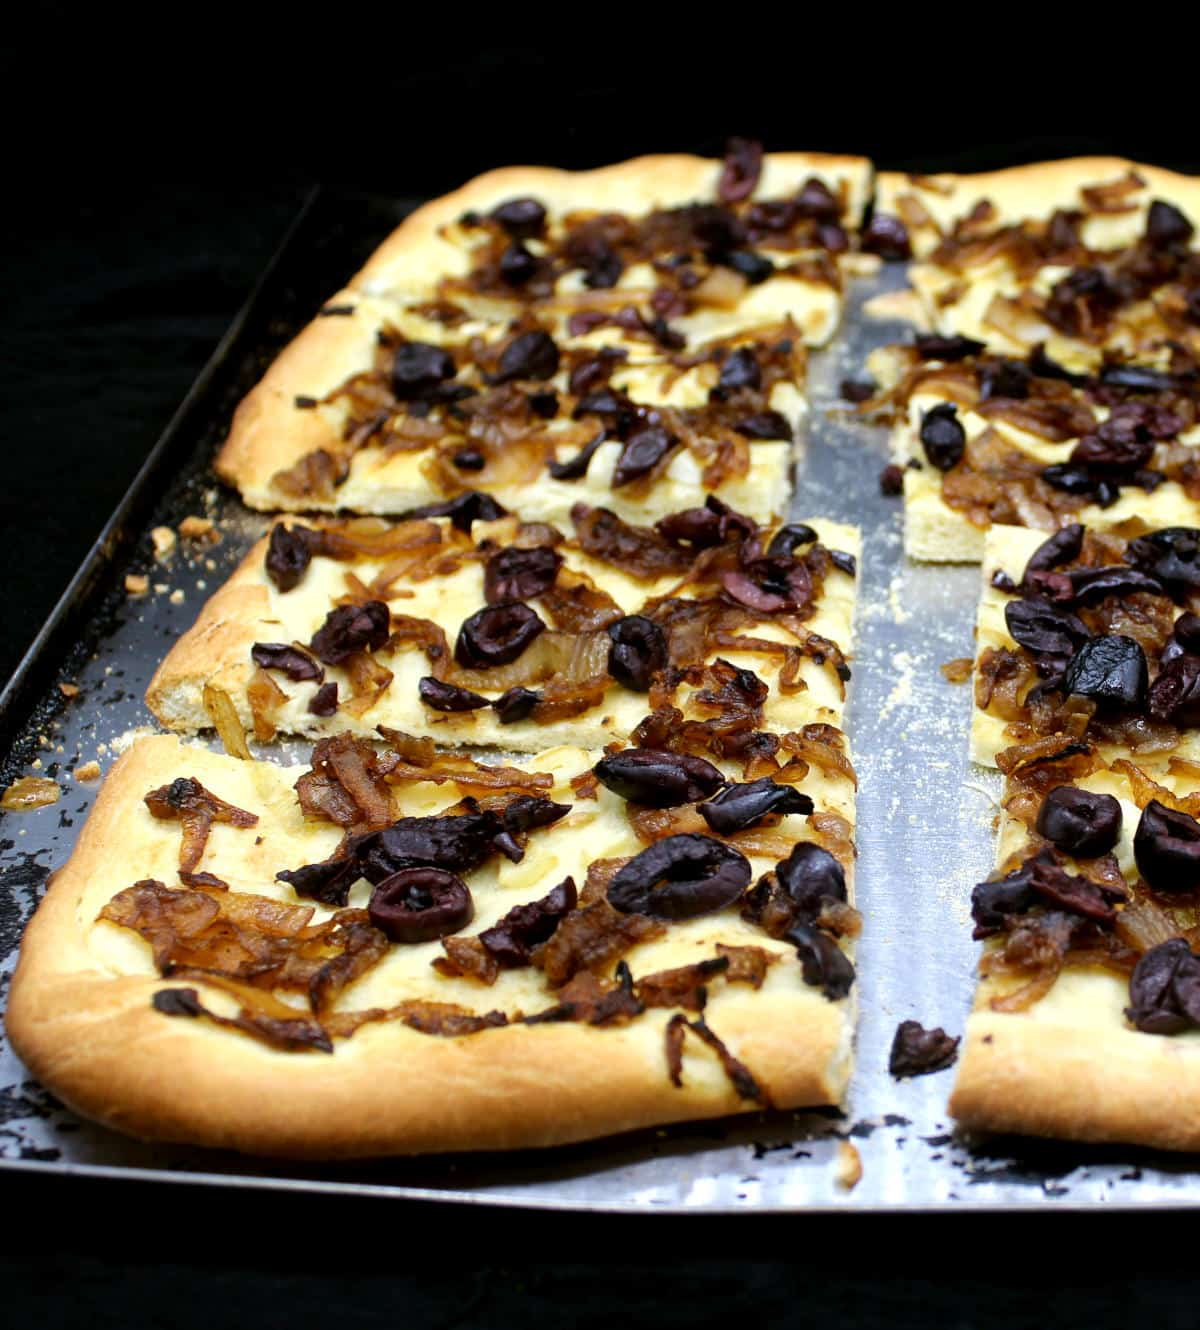 Closeup of slices of caramelized onion tart with olives on a baking sheet.